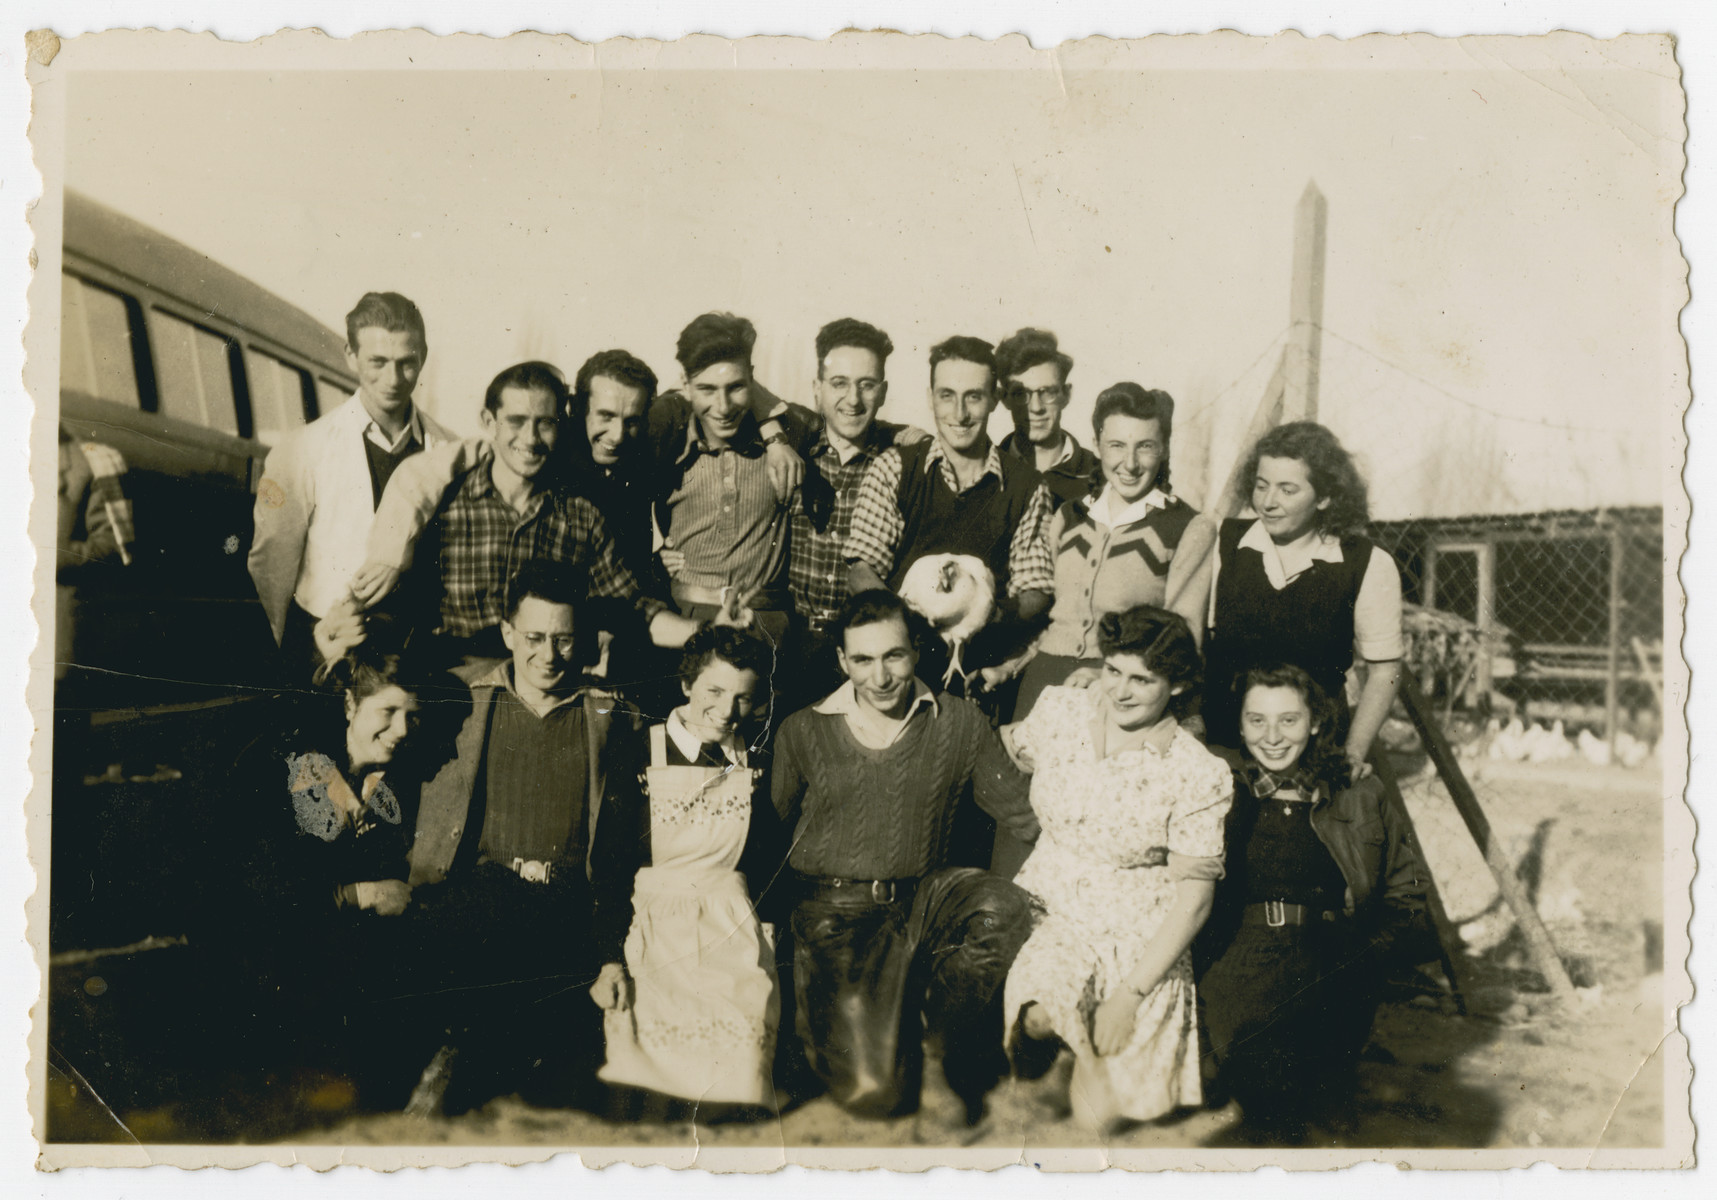 """Photograph from an album entitled, """"Hacshara Kidma Chile,""""  documenting life on a postwar Shomer Hatzair Zionist agricultural collective in Chile.  A group of young adults stops for a photo while traveling by bus to the haschara. The inscription on the back (in German) reads, """"Trip to the Hachshara.""""  The inscription on the album page (in Spanish) reads, """"The first Jalutzim [pioneers]....""""  Among those pictured are Susi Hirschberg, Hanni Bloch, Finola (?) Muller, Ballo, Carlos Mayer, Manfred Flat, Sallo Asner (?), Hanus Ehrlich (?), Ernst Joel, Ruth Klein, Marion Jokolsh (?), Hans Hoffstatt (?), Ramona Lorn (?), Meck Krotosch, Eva Frankel."""